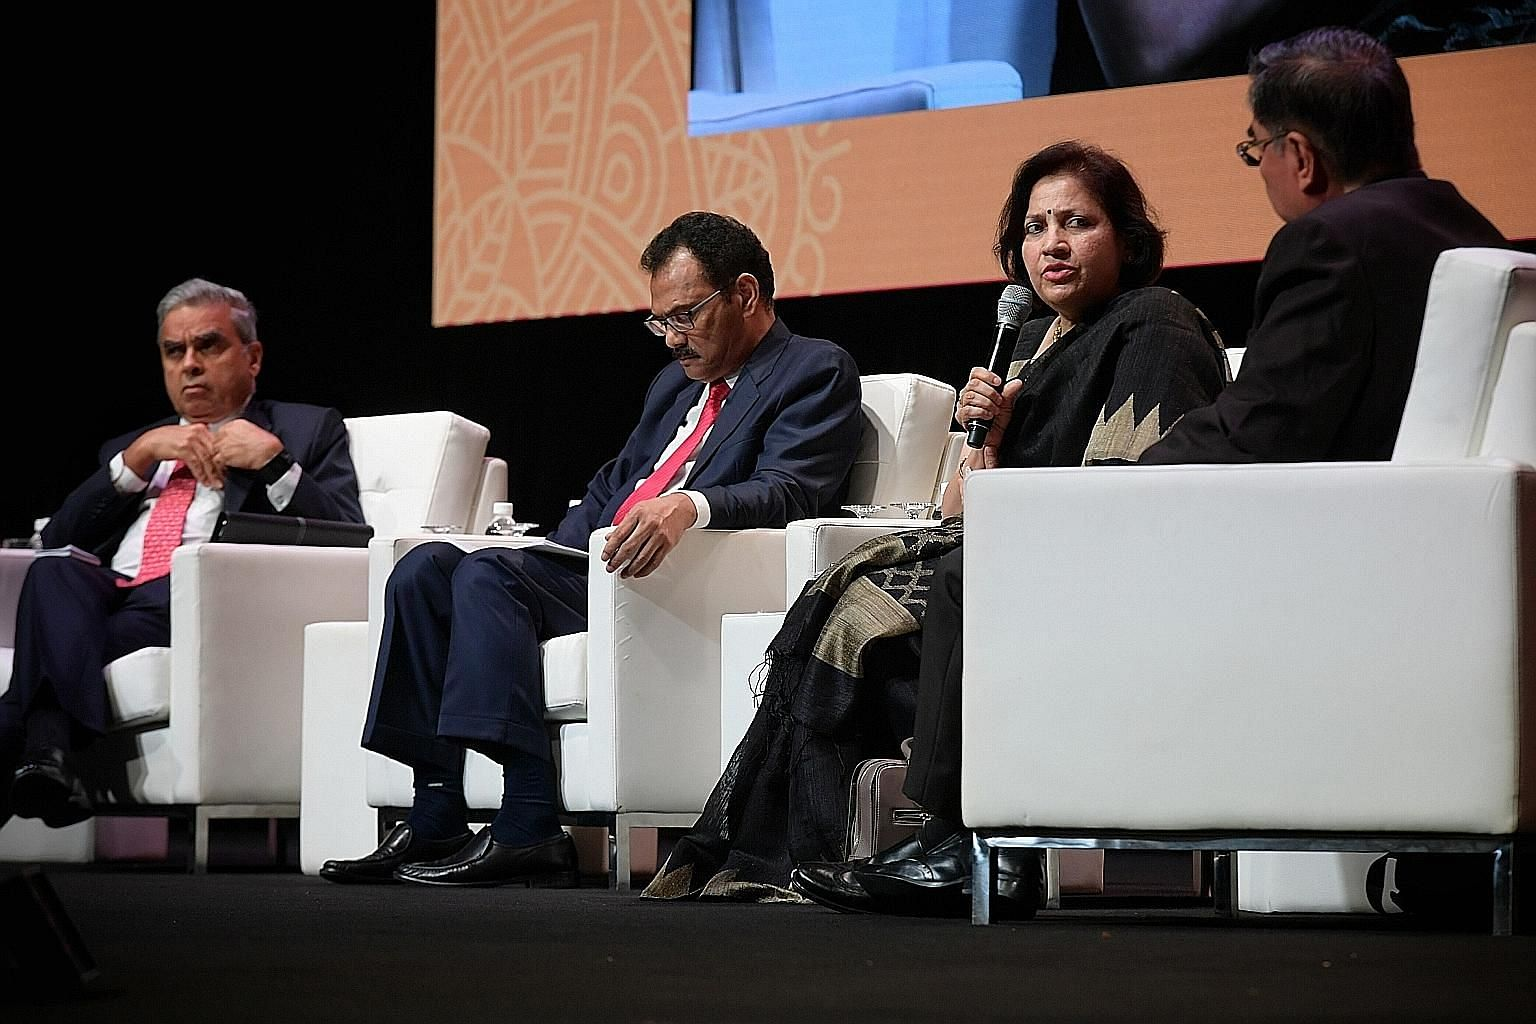 From left: The Lee Kuan Yew School of Public Policy's immediate past dean Kishore Mahbubani; Malaysian Deputy Minister in the Prime Minister's Office S.K. Devamany; senior diplomat in India's Ministry of External Affairs Preeti Saran; and Ambassador-